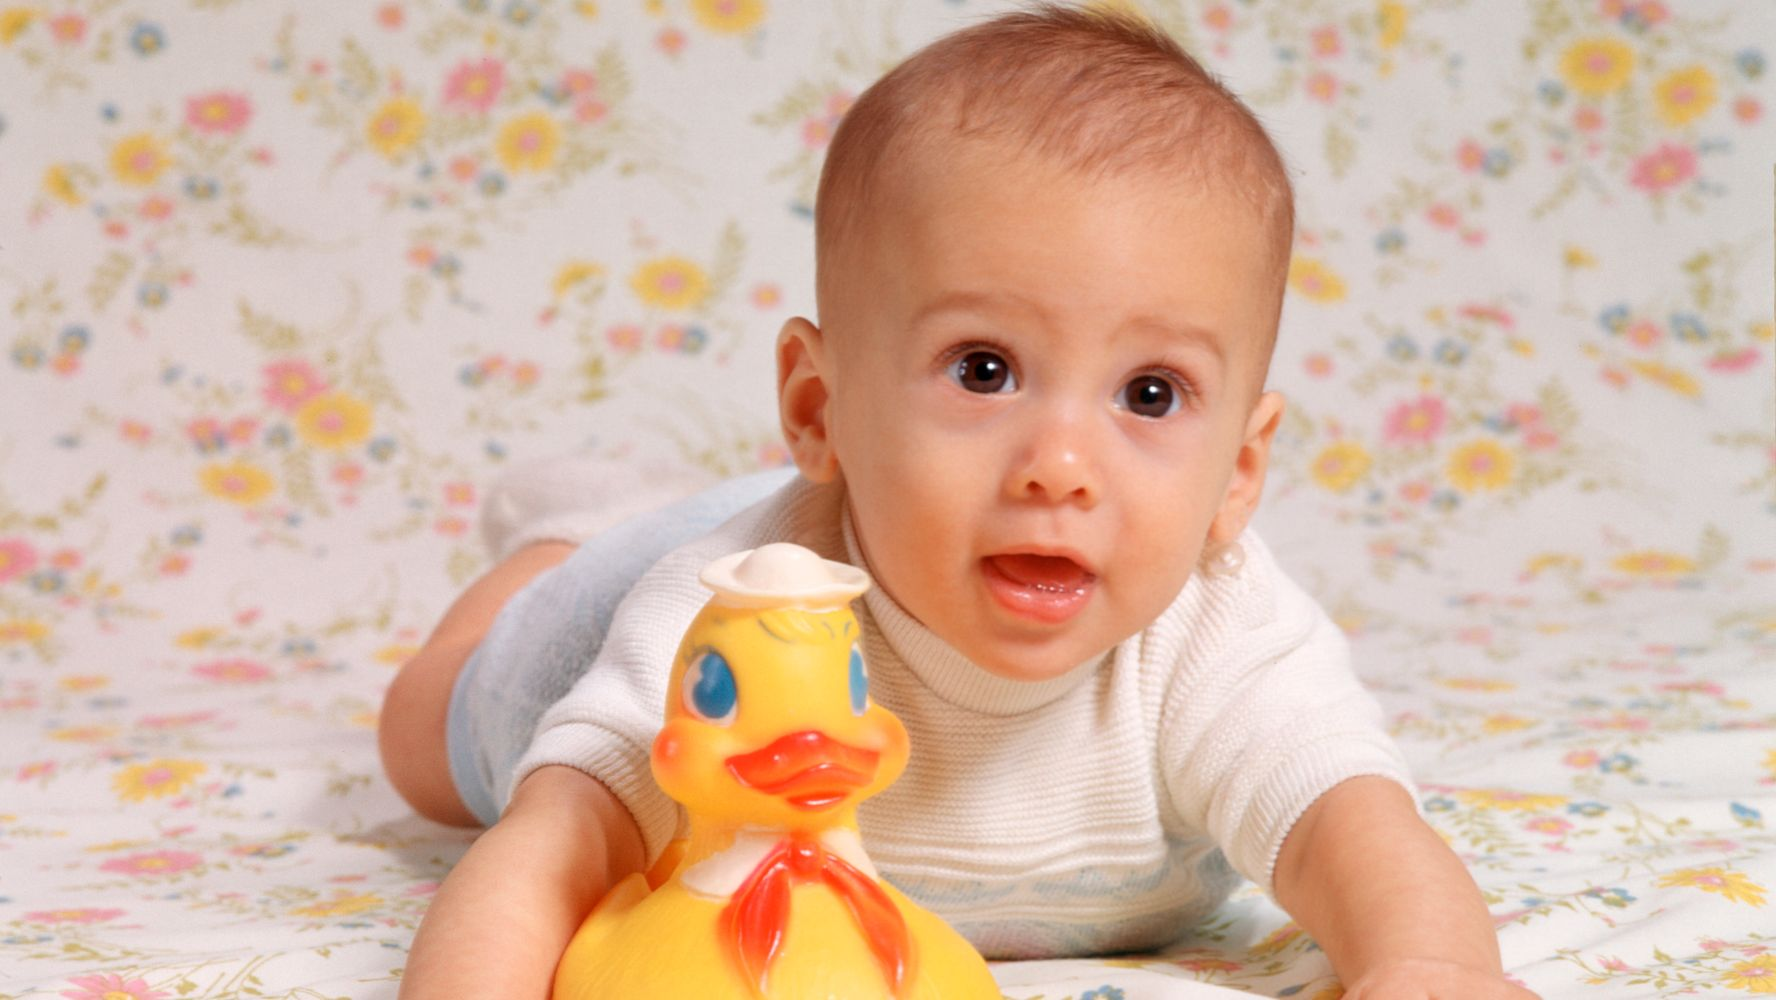 These Were The Most Popular Baby Names In The 1970s